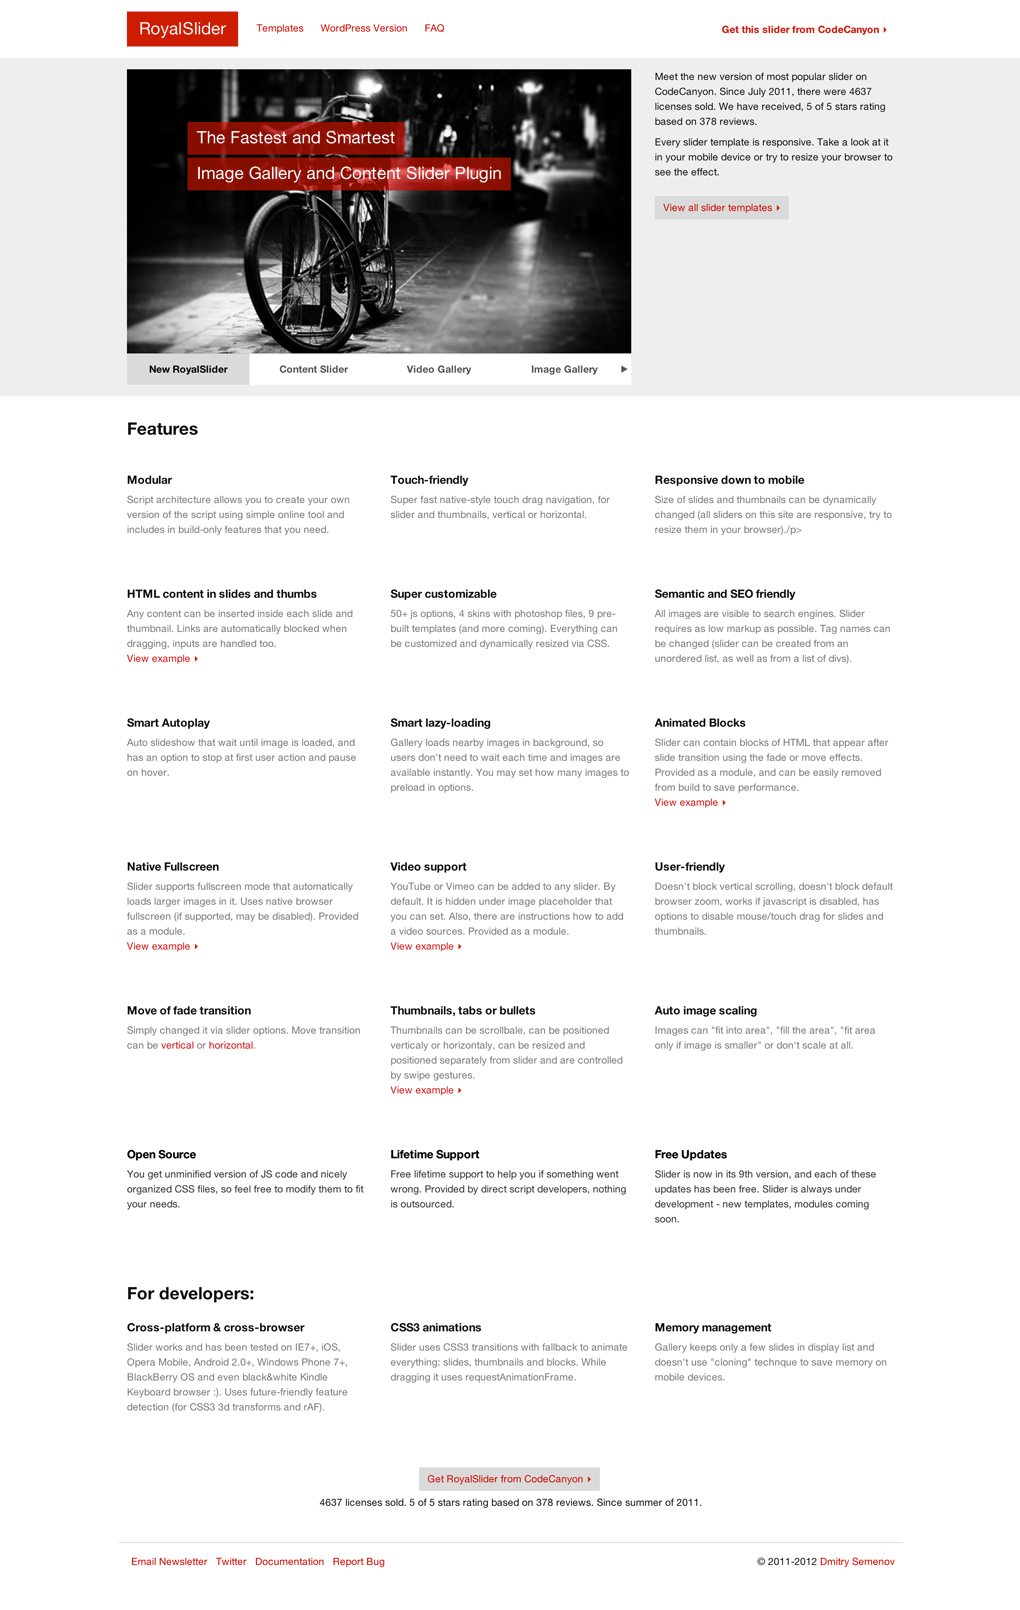 web design critique